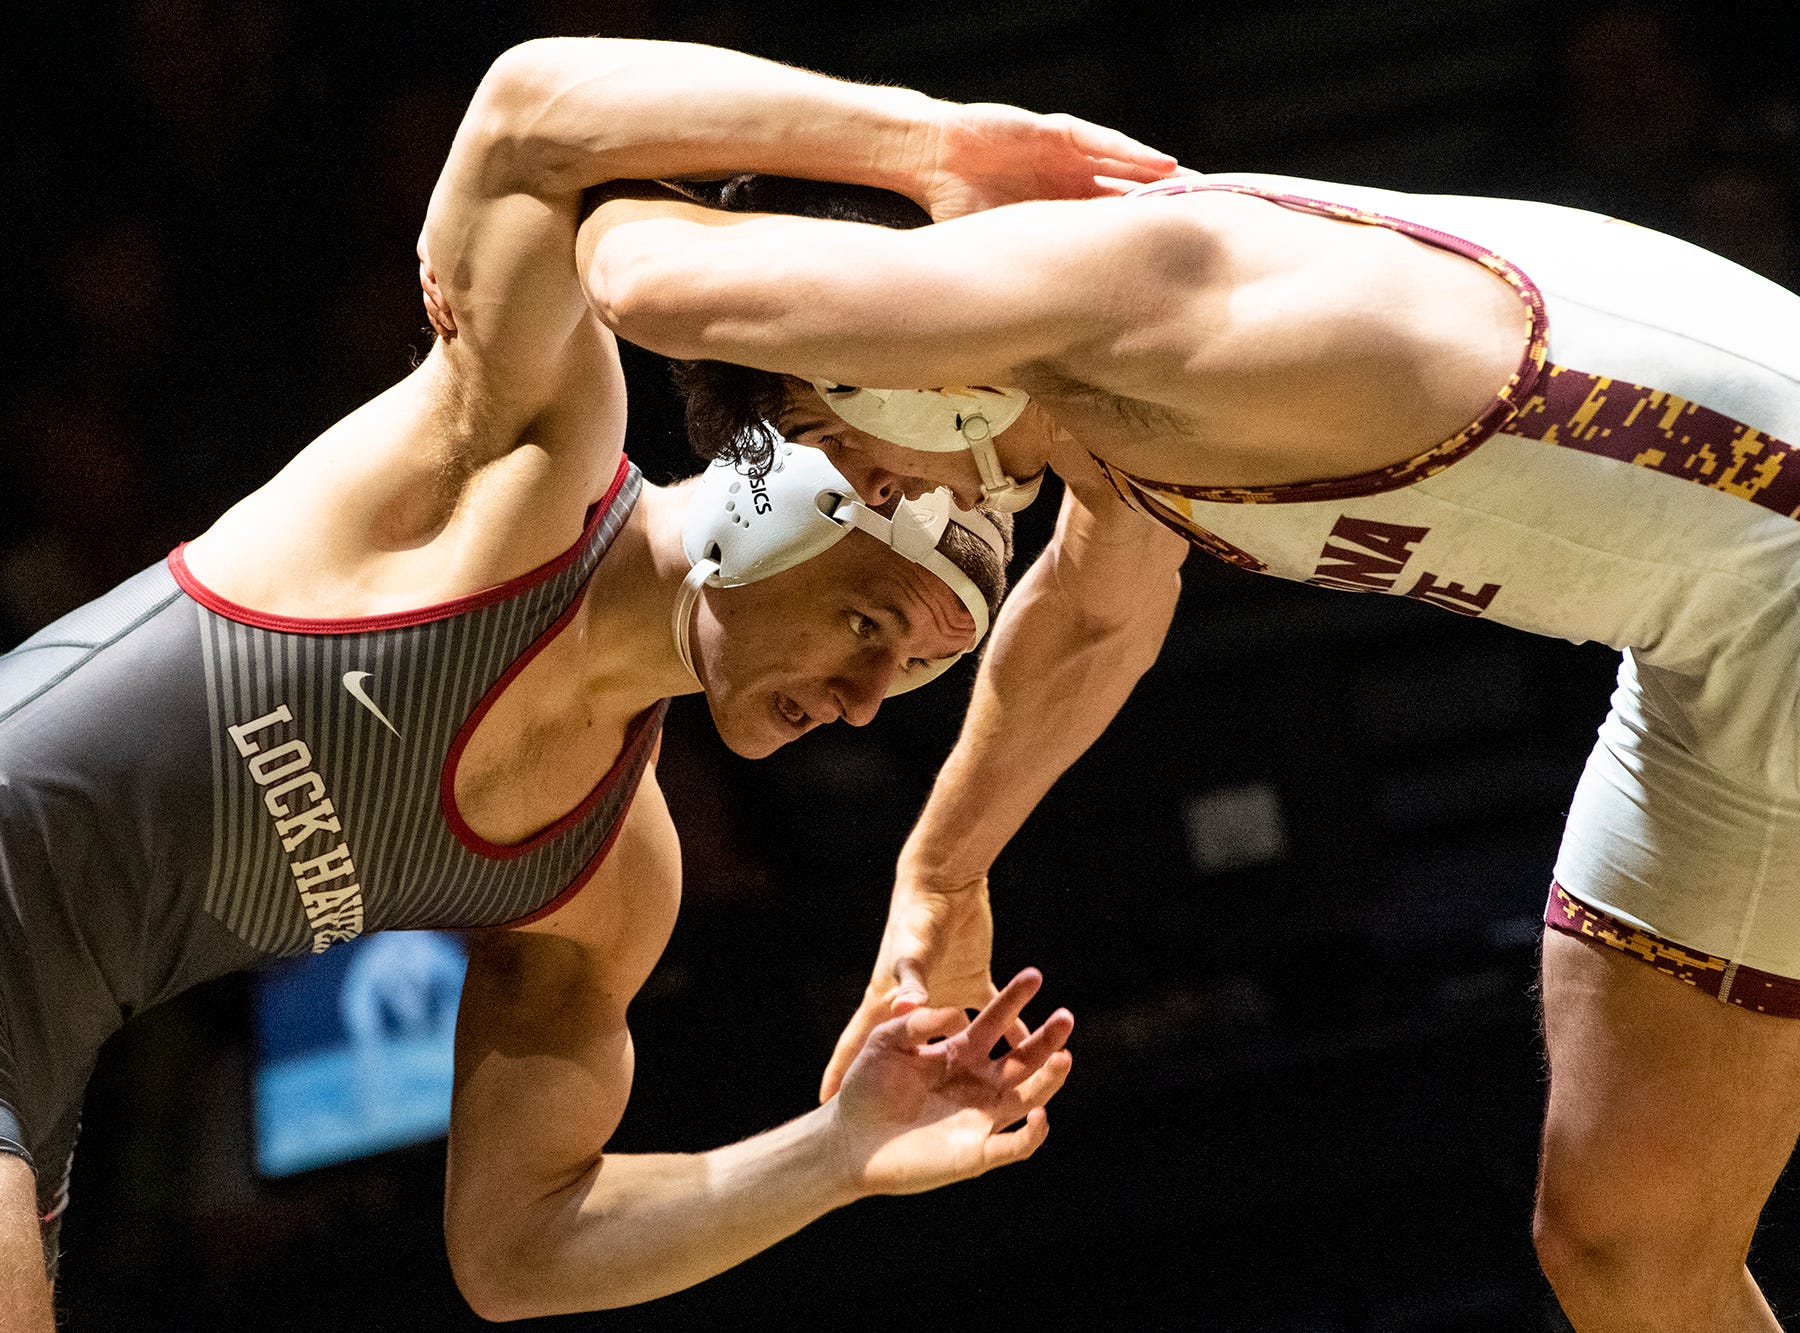 Lock Haven's Alex Klucker, left, wrestles with Arizona State's Christian Pagdilao (No. 15) during the 157-pound bout at Red Lion's Fitzkee Athletic Center on Friday, Jan. 25, 2019. Pagdilao beat Klucker, 10-4. No. 22 Lock Haven upset No. 12 Arizona State, 23-14, in the first ever 'Rumble in the Jungle.'